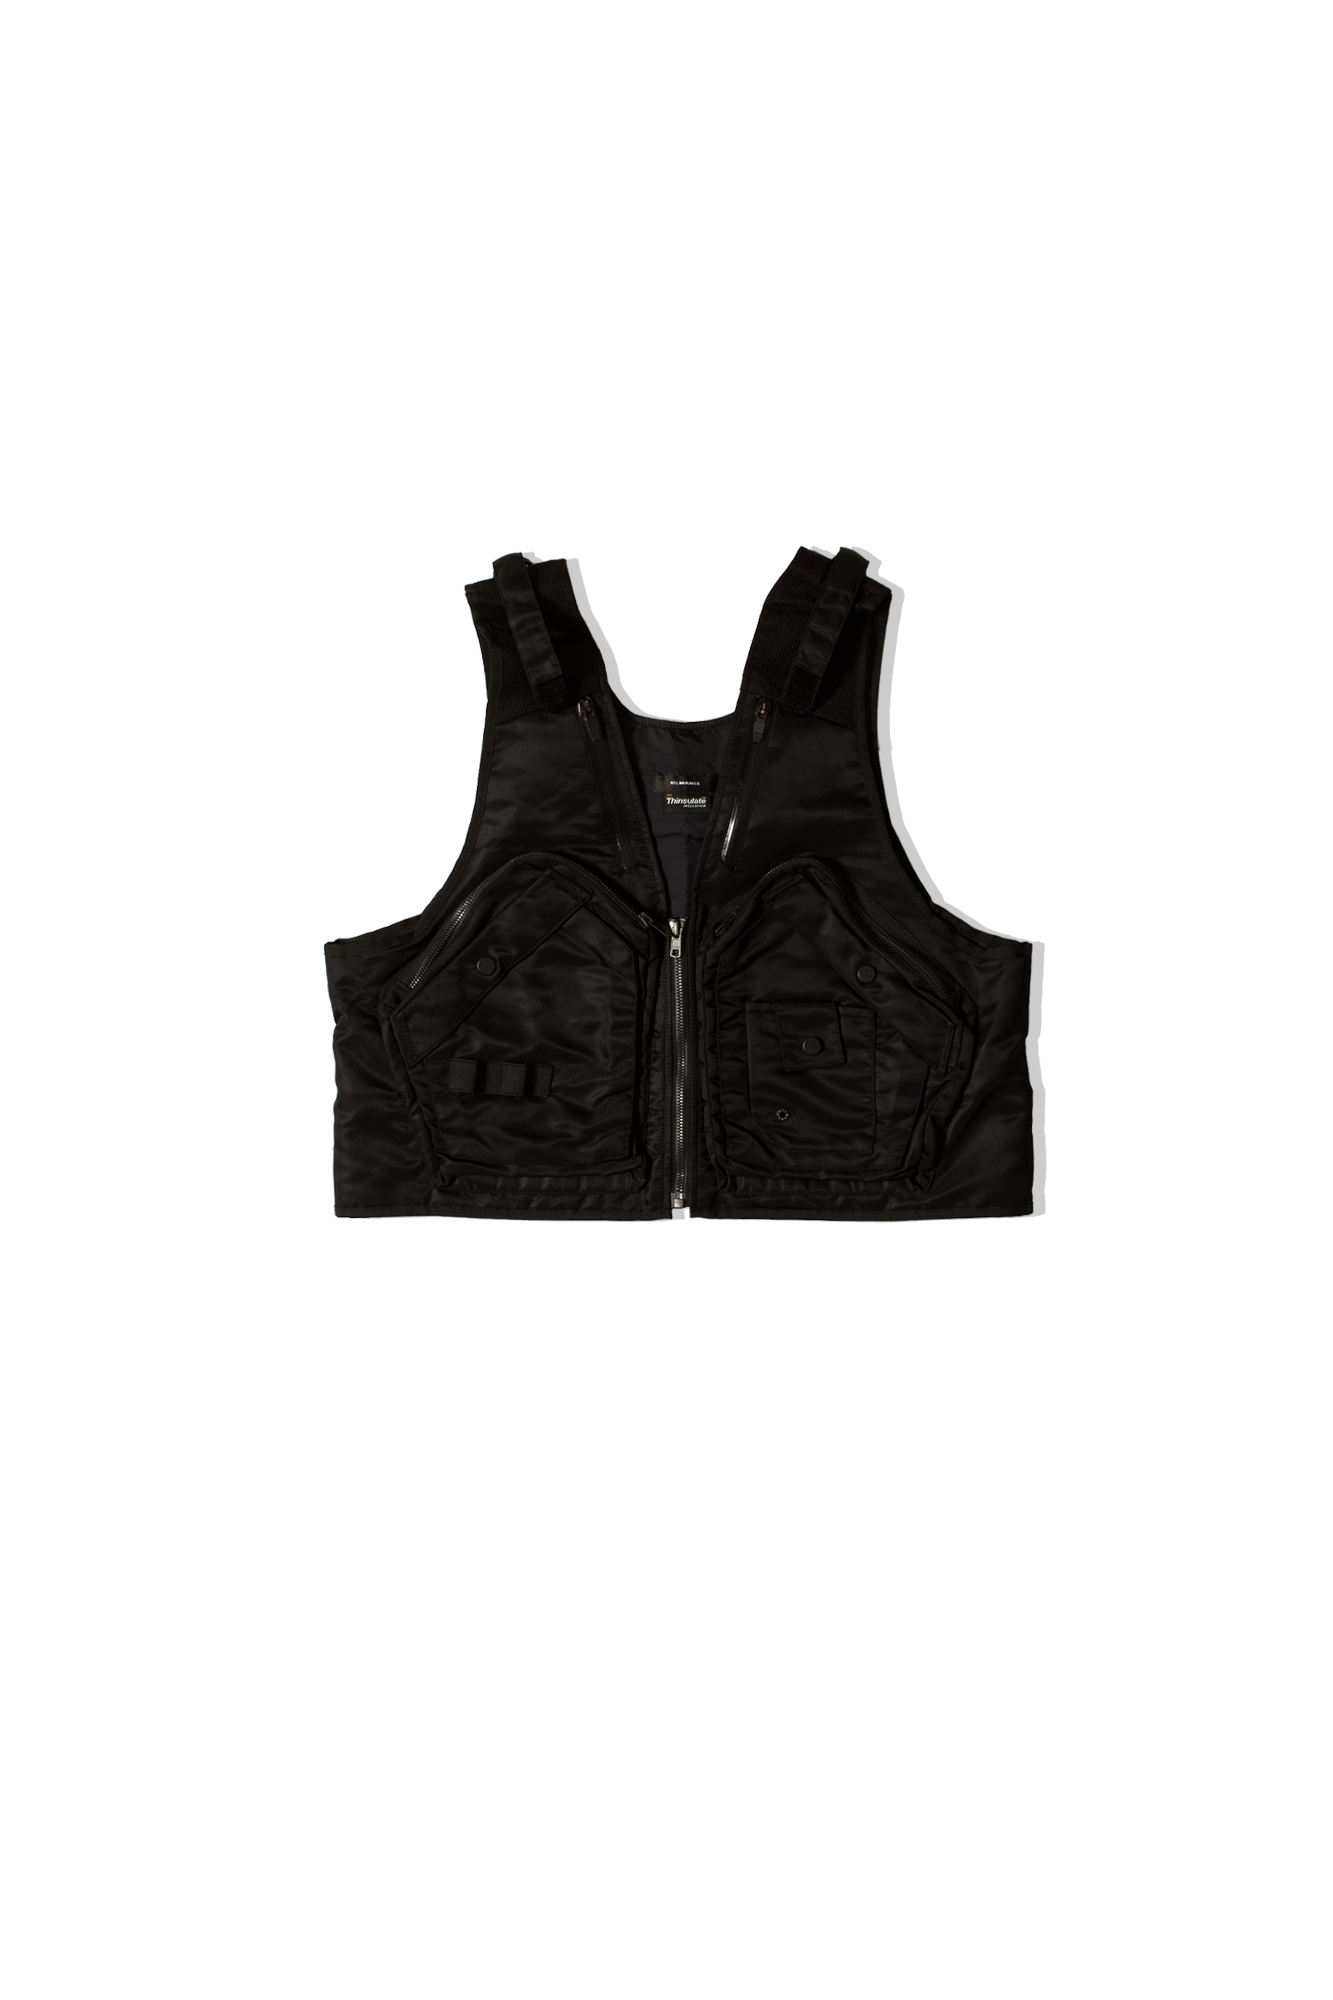 Nilmance Vest FW19-VB-01 Black FW19-VB-01#000#BLACK#S - One Block Down